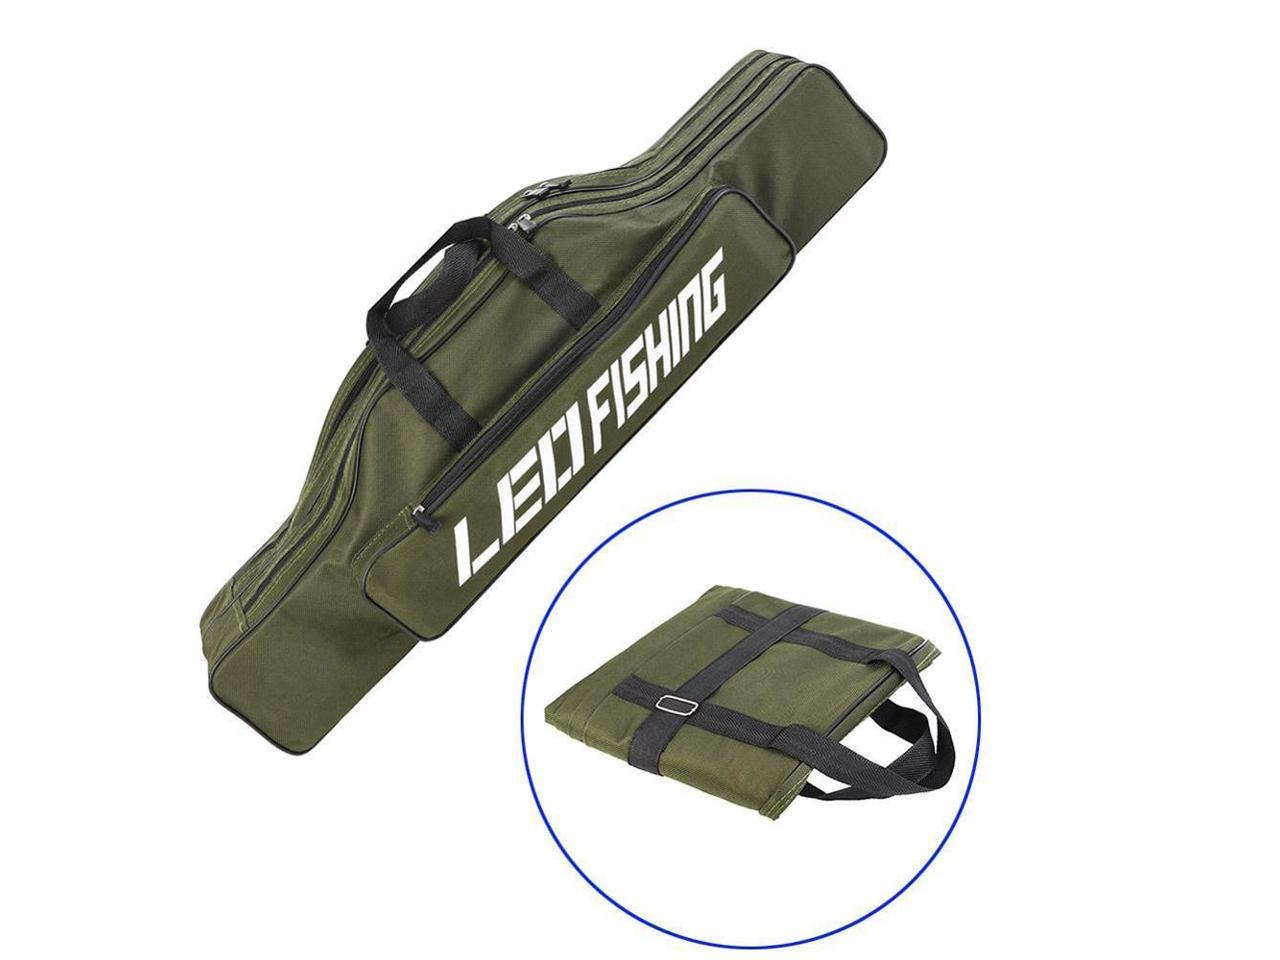 Portable Fishing Rod Holder Straight Handle Leg Bag Free Carrier Tackle Tools